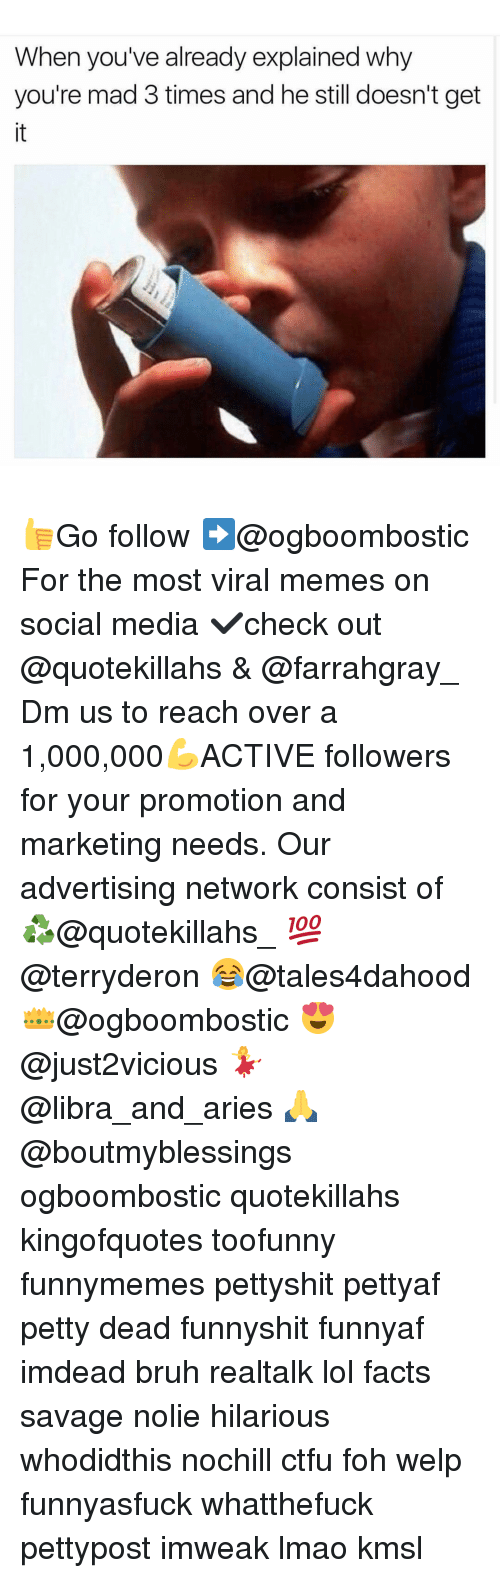 Ctfu, Foh, and Memes: When you've already explained why  you're mad 3 times and he still doesn't get 👍Go follow ➡@ogboombostic For the most viral memes on social media ✔check out @quotekillahs & @farrahgray_ Dm us to reach over a 1,000,000💪ACTIVE followers for your promotion and marketing needs. Our advertising network consist of ♻@quotekillahs_ 💯@terryderon 😂@tales4dahood 👑@ogboombostic 😍@just2vicious 💃@libra_and_aries 🙏@boutmyblessings ogboombostic quotekillahs kingofquotes toofunny funnymemes pettyshit pettyaf petty dead funnyshit funnyaf imdead bruh realtalk lol facts savage nolie hilarious whodidthis nochill ctfu foh welp funnyasfuck whatthefuck pettypost imweak lmao kmsl